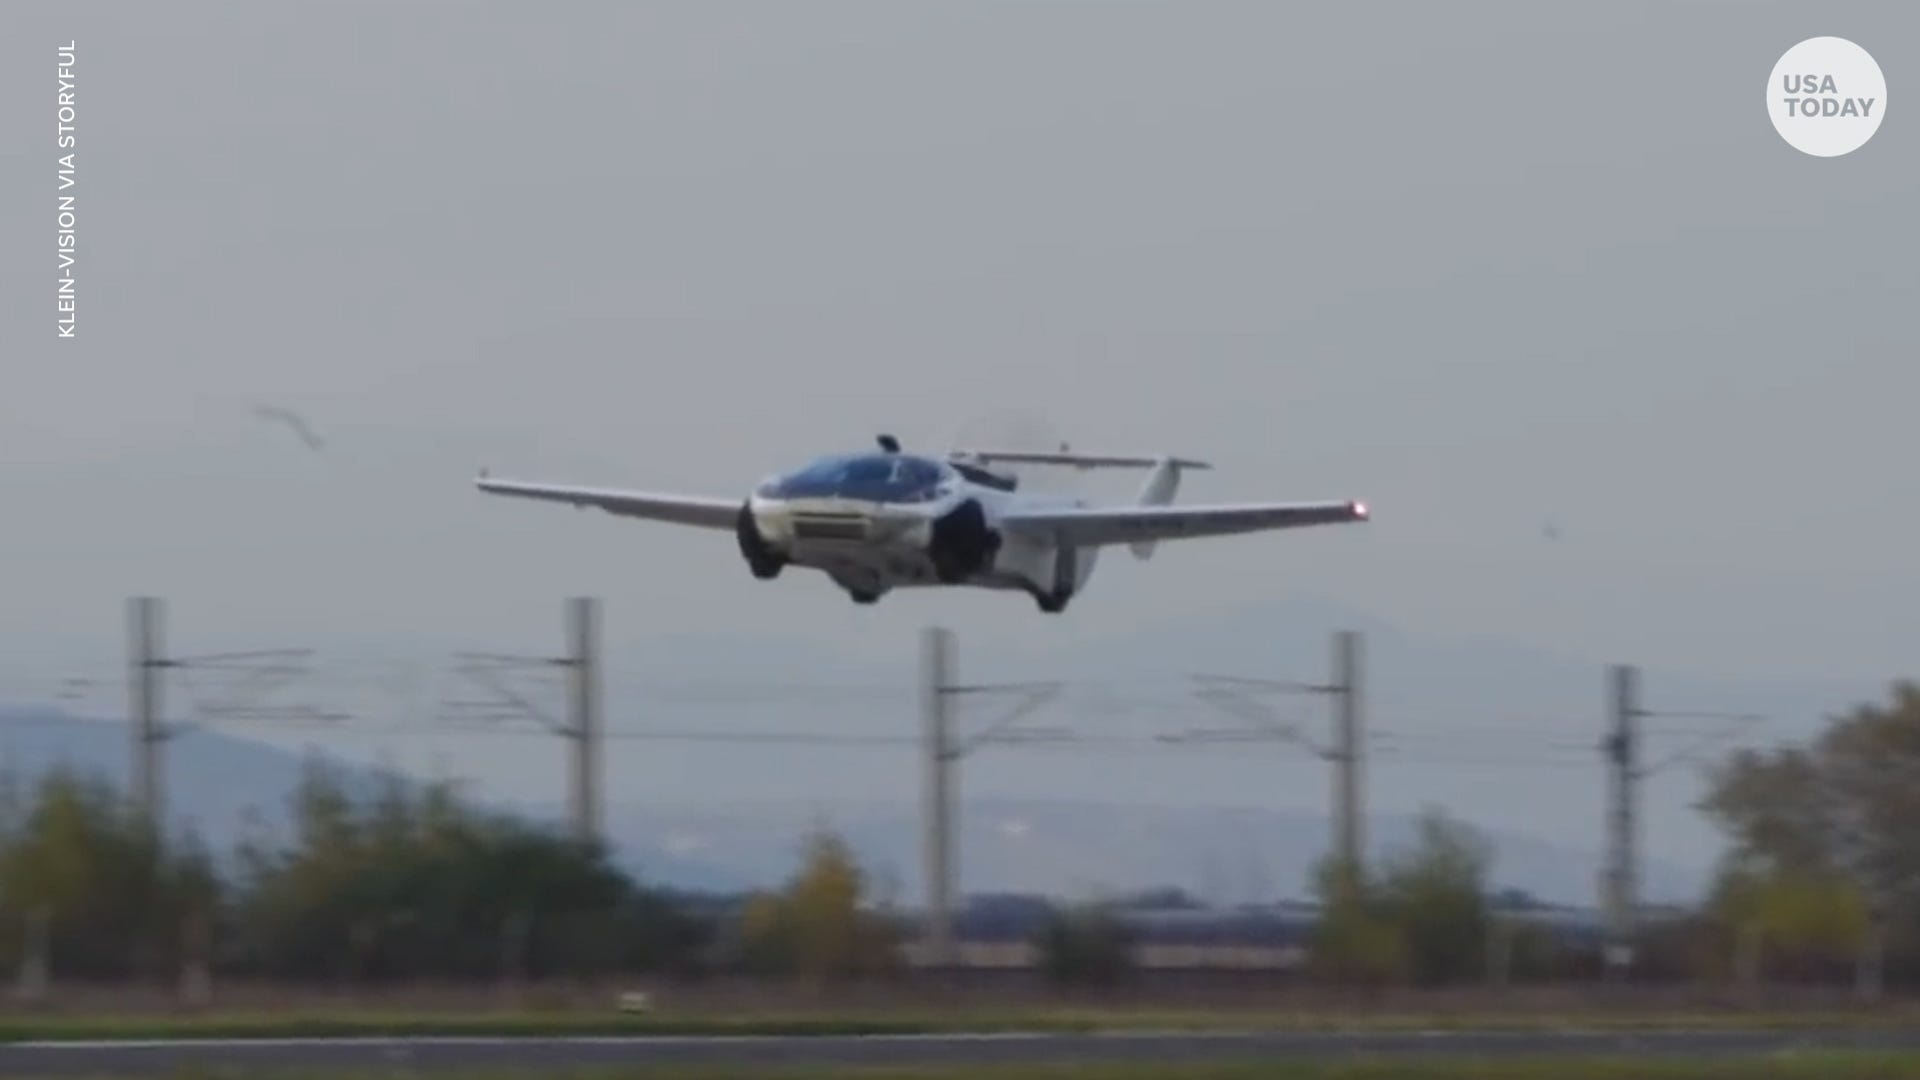 Flying car transforms from land to air vehicle in less than 3 minutes, company says